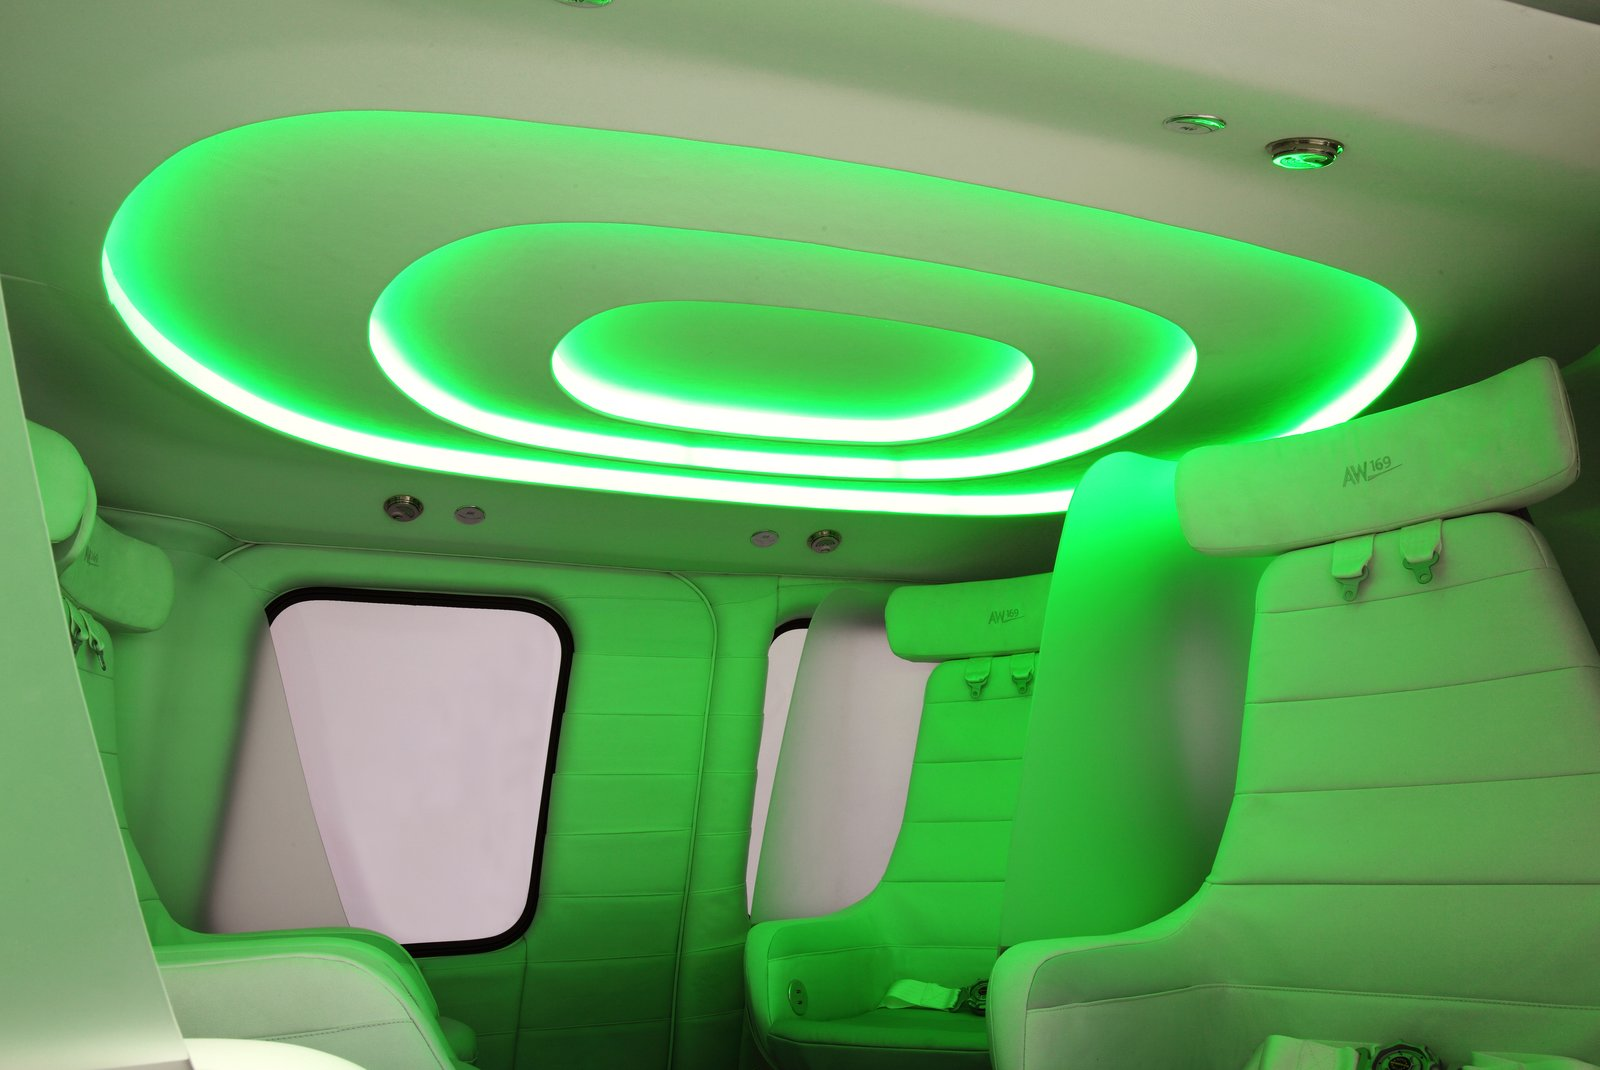 Using a specialized app, passengers can control the lighting, entertainment system, and window blinds, plus get information about their flight and destination.  The Ultimate Ride: VIP Helicopter with Plush Interior by Allie Weiss